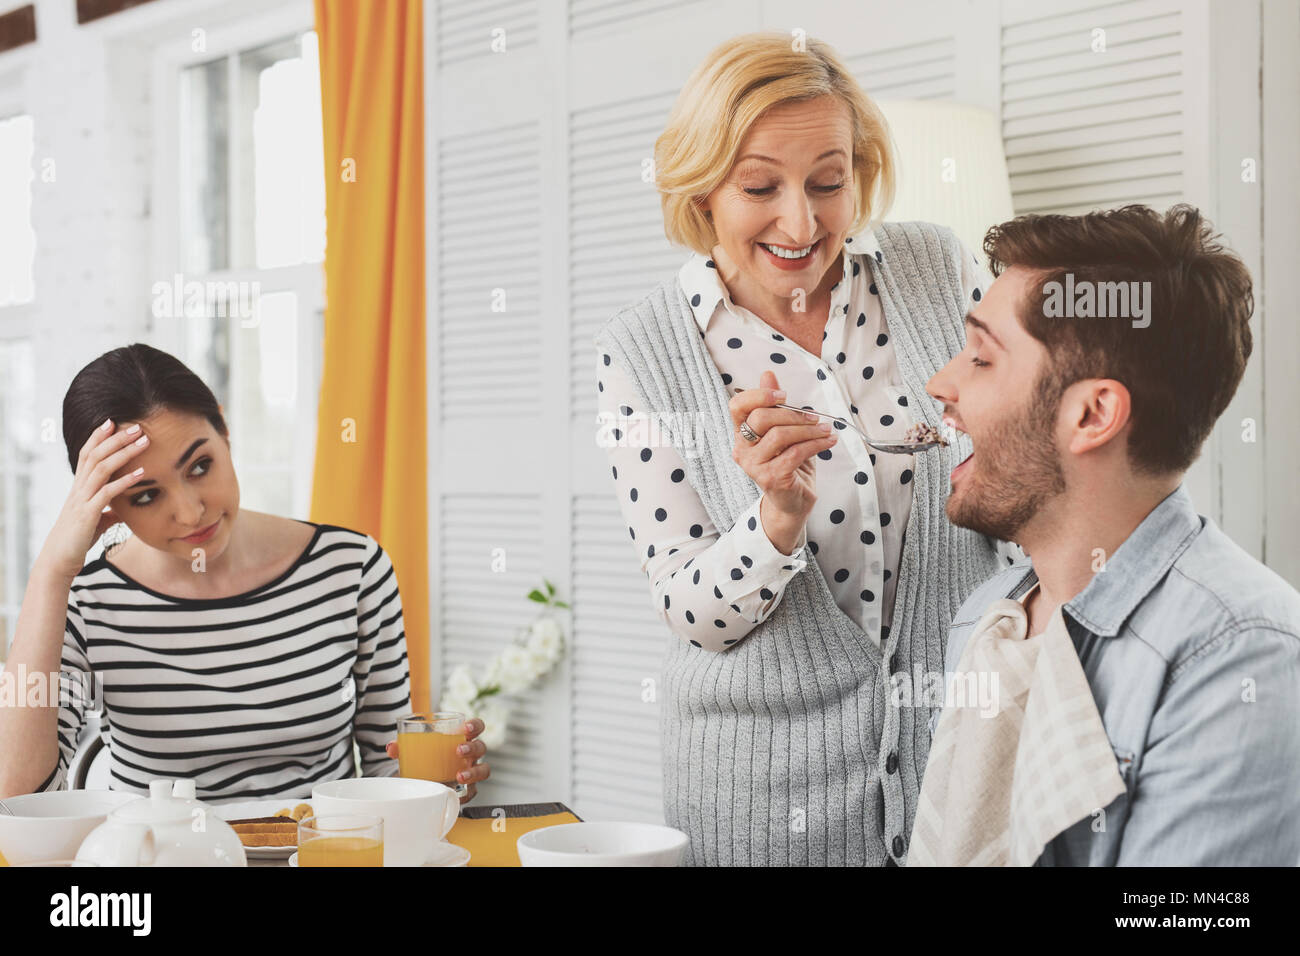 Happy aged woman holding a spoon - Stock Image